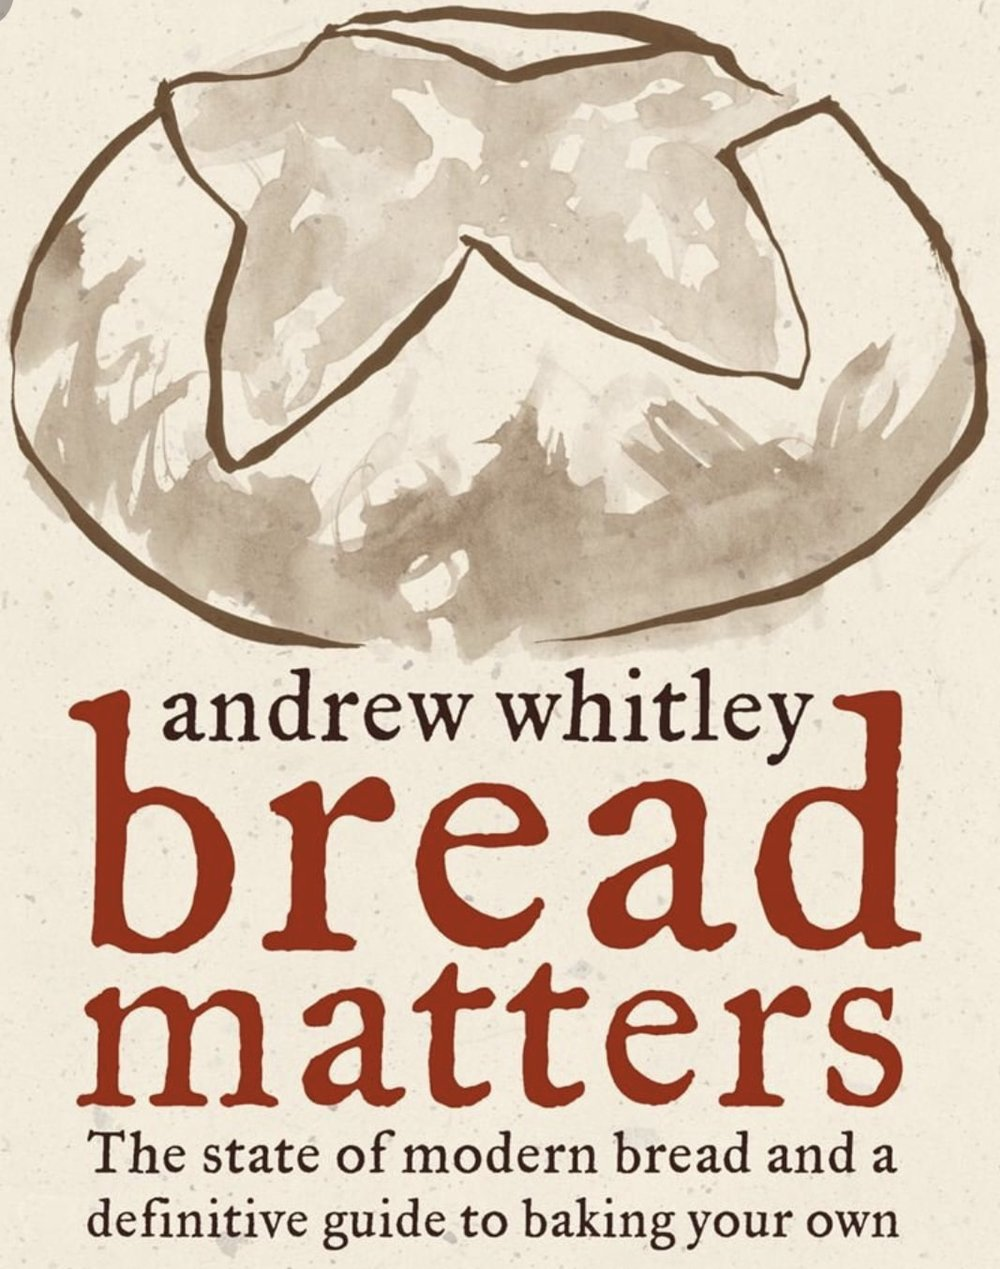 Andrew_whitley_bread_matters.jpeg